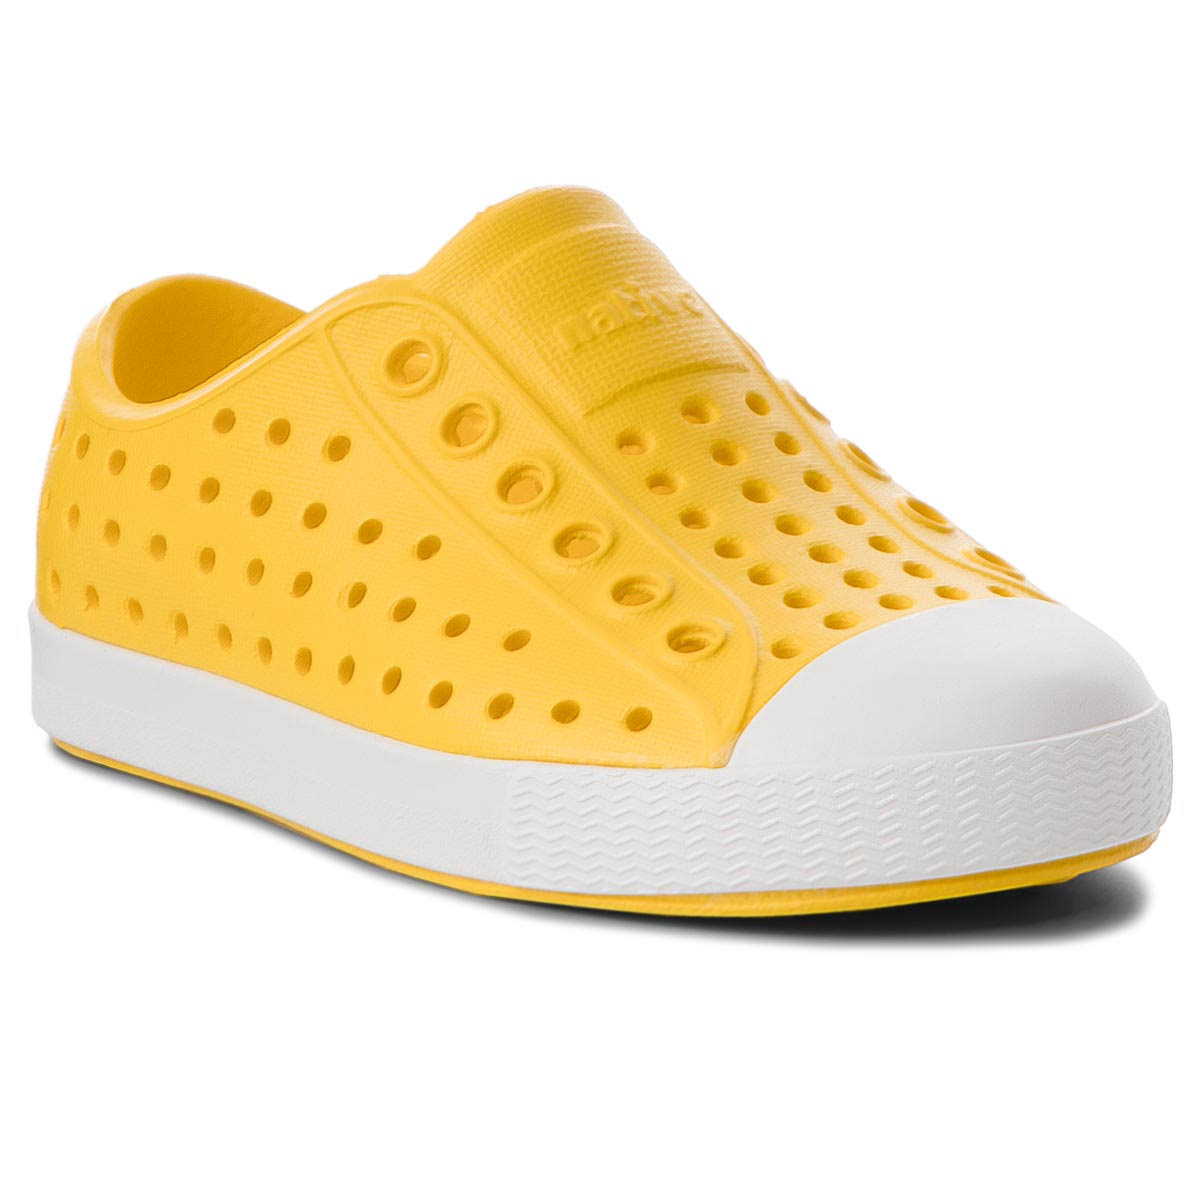 Native Little Kids' Crayon Yellow/Shell White Jefferson Shoes - 6